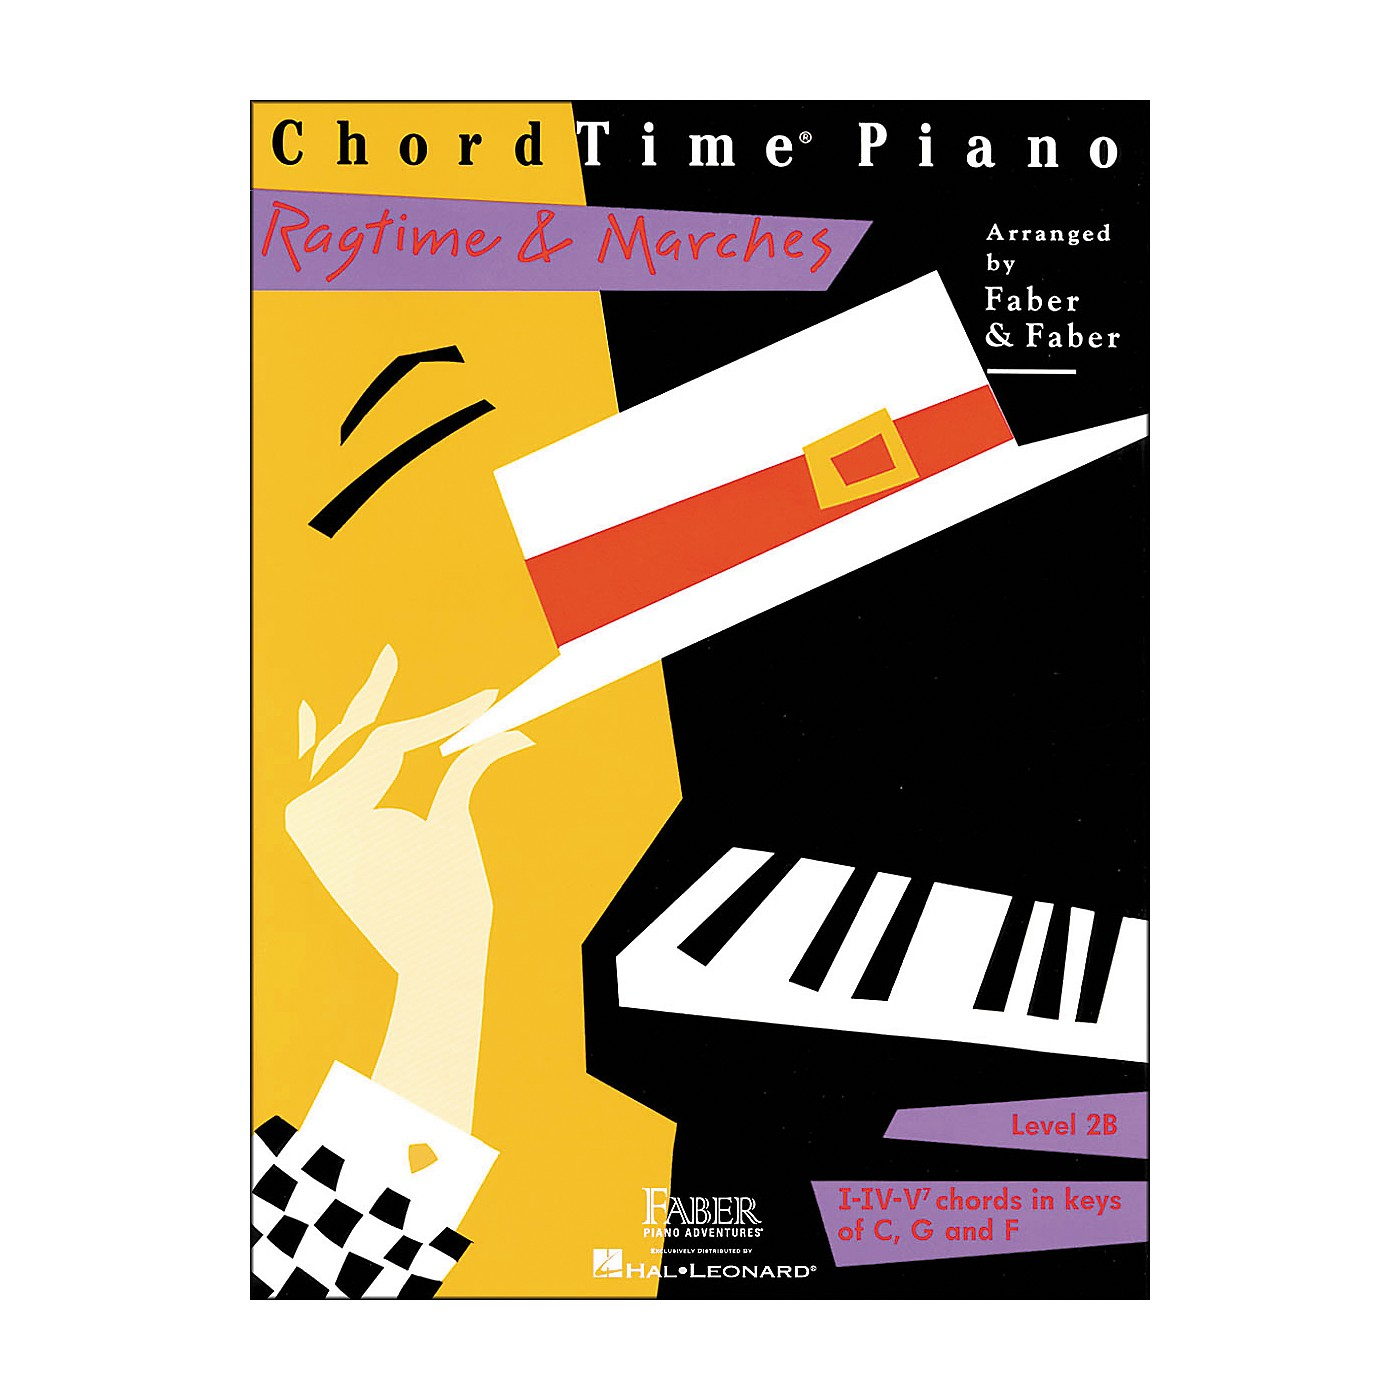 Faber Piano Adventures Chordtime Piano Ragtime & Marches Level 2B Book - Faber Piano thumbnail